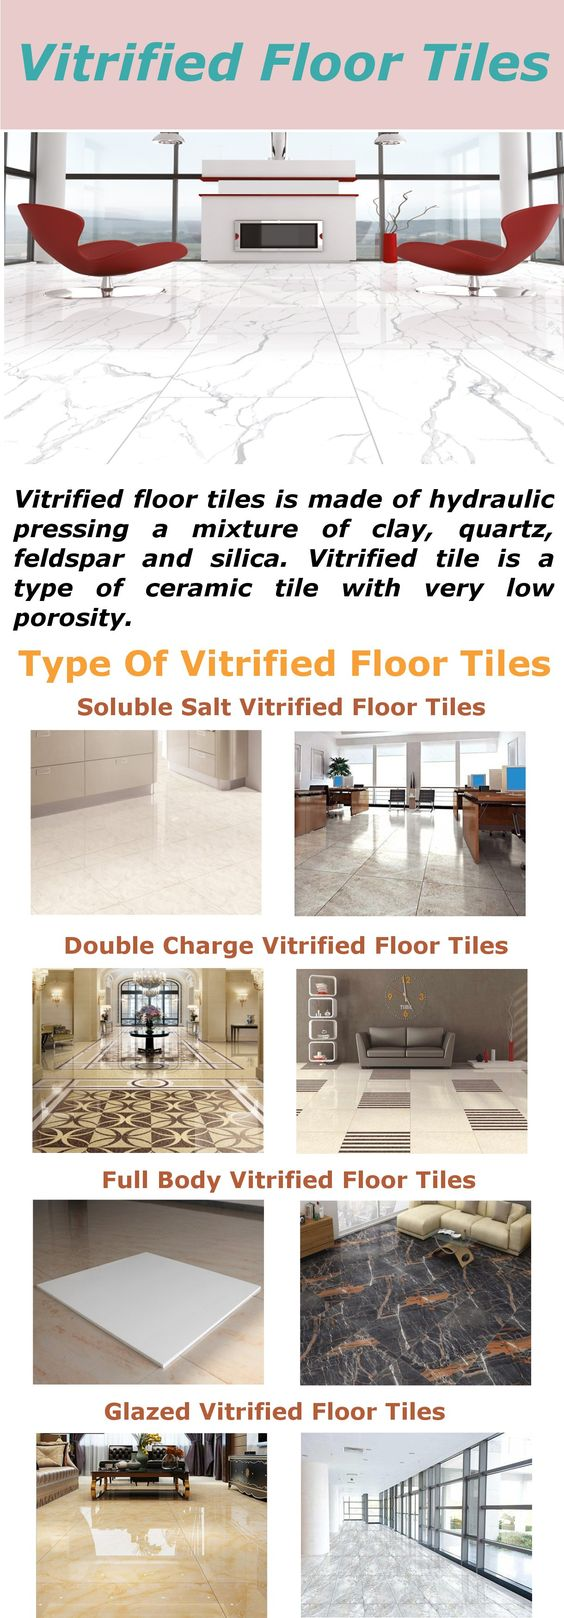 Types of vitrified floor tiles images home flooring design types of vitrified floor tiles choice image tile flooring design polished vitrified floor tiles types design dailygadgetfo Gallery